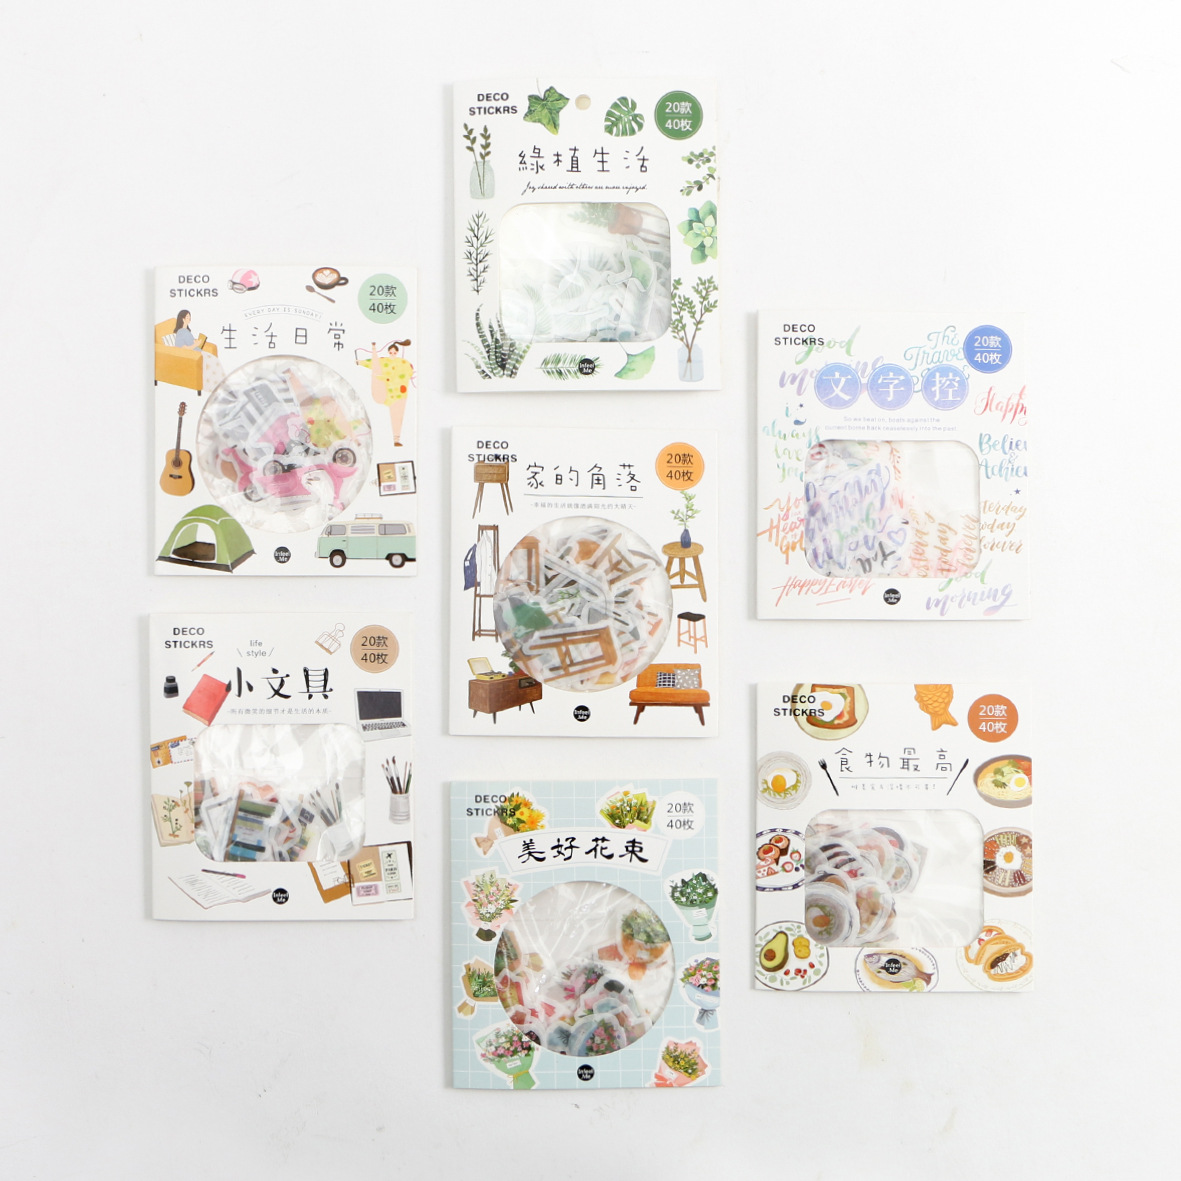 Decorative Planner Sticker Set Kids Craft Scrapbooking DIY Adhesive Sticker Tape for Diary, Album, Bullet Journals , Calendars party cake clear silicone stamp for diy scrapbooking photo album decorative craft